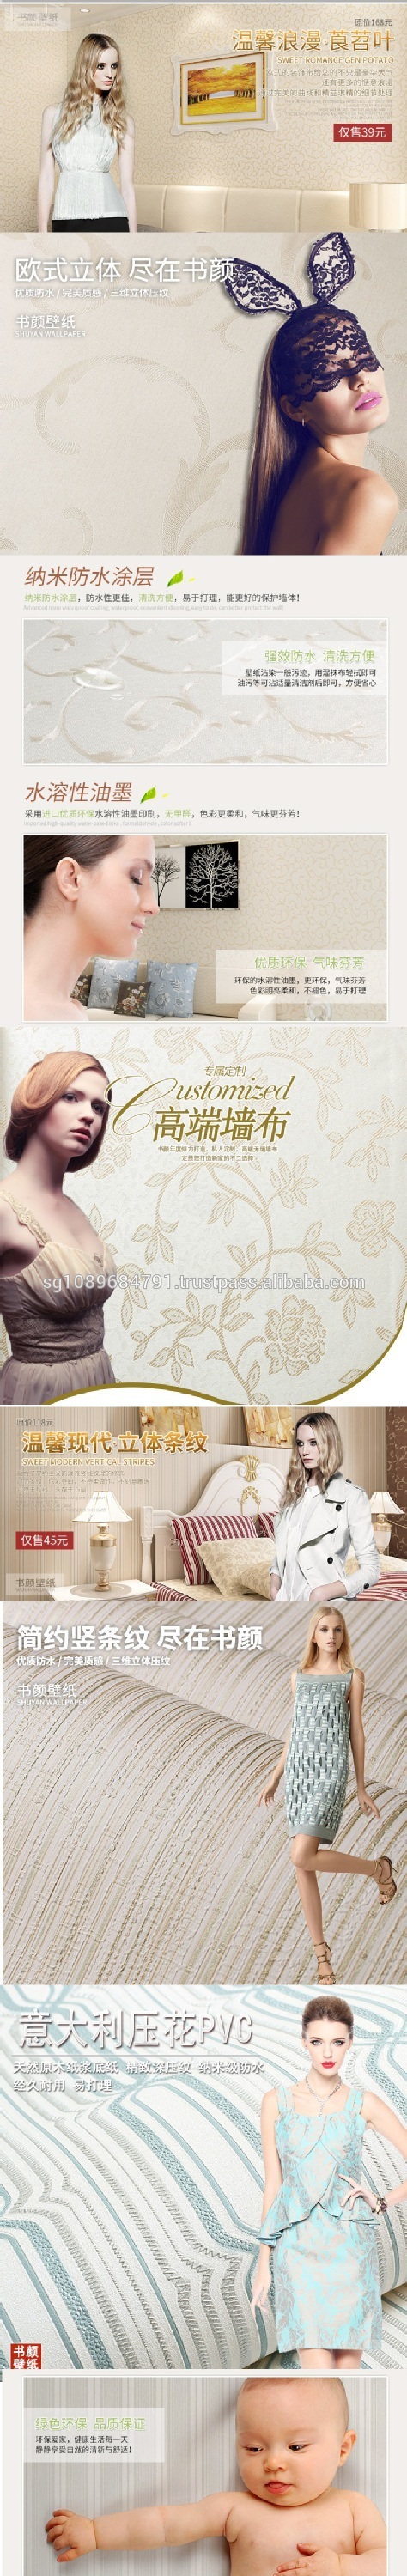 3d printer wallpaper china/wallpapers 3d design house decoration/3d wallpaper korean design/wallpaper